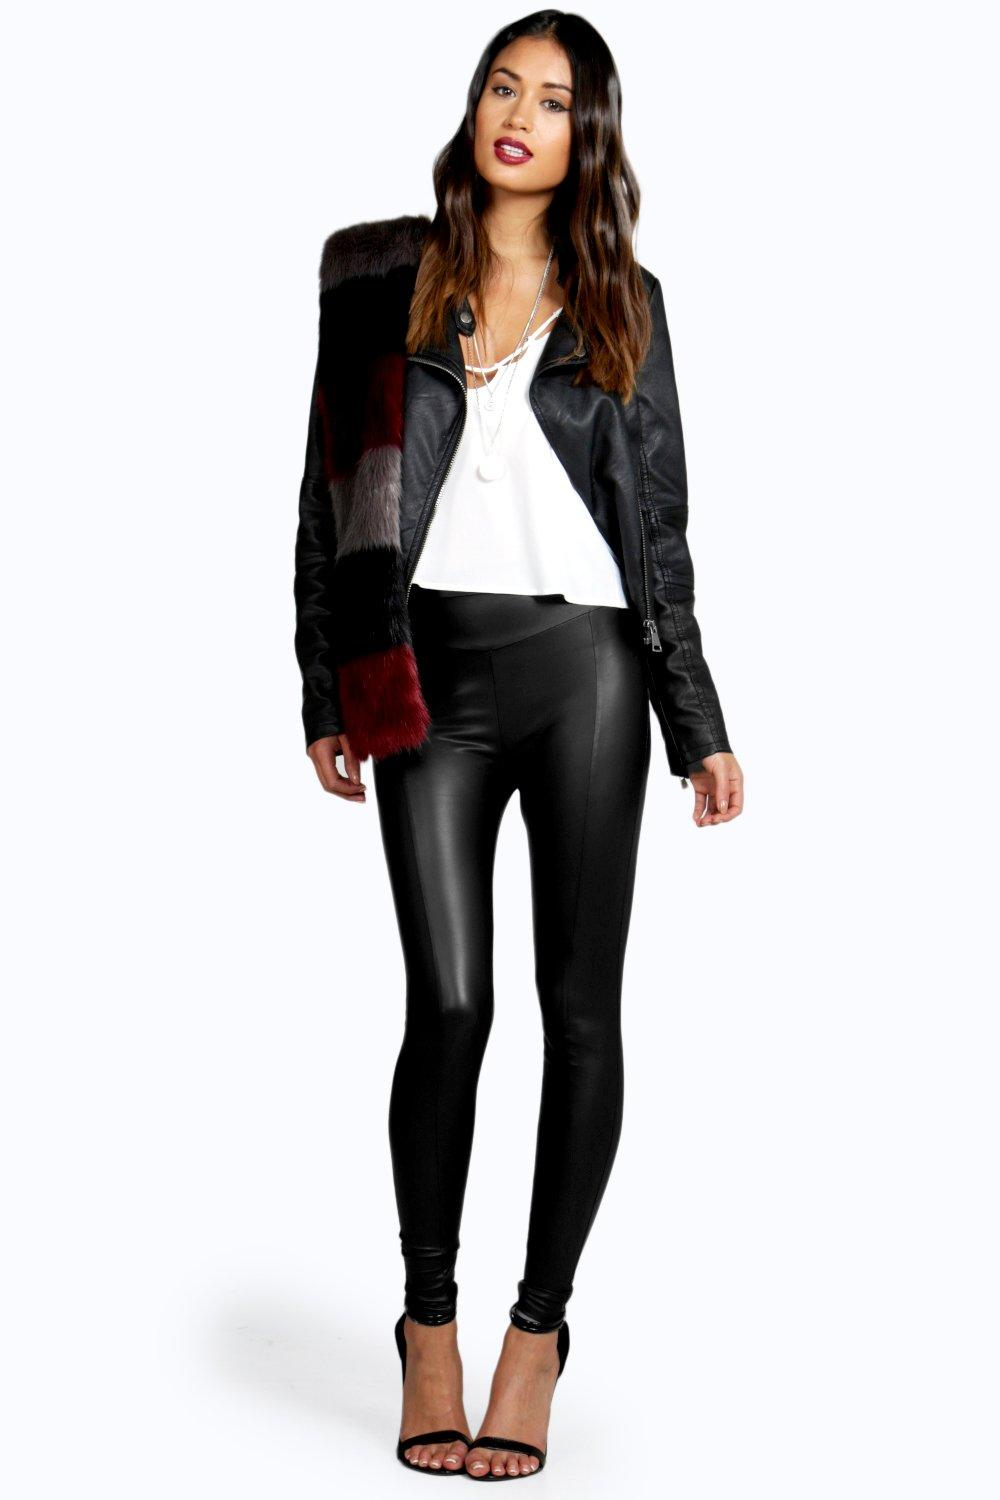 They've been in style since forever, but at one point all of us have wondered what to wear with leather pants. You might think that cute leather leggings outfit is .